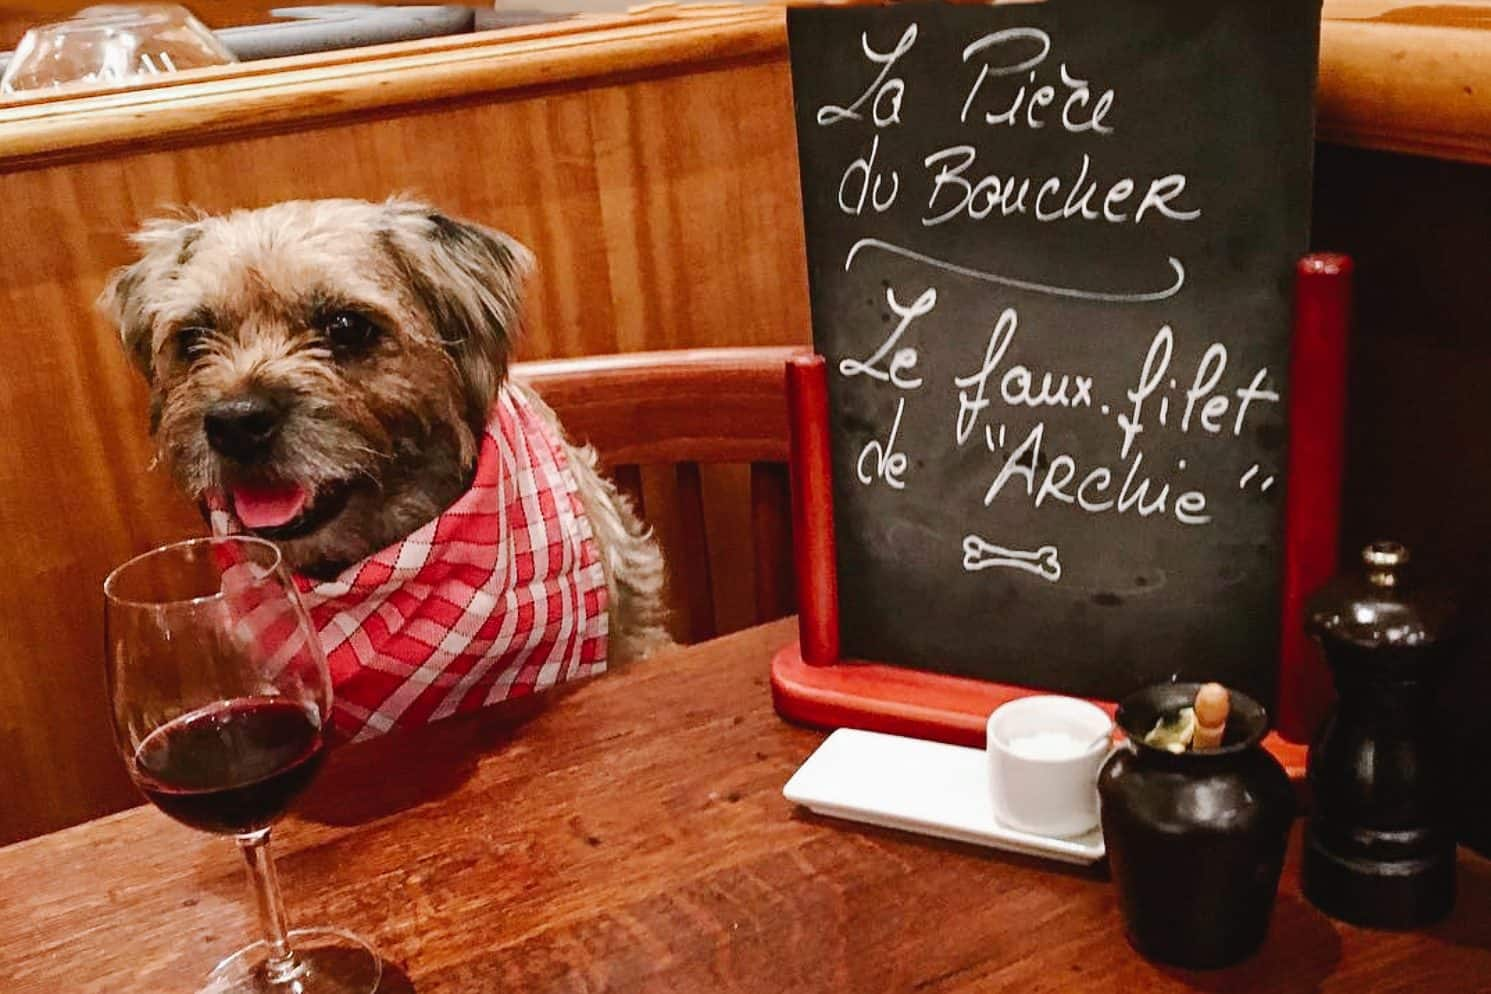 Dog Archie Lewoof sits on a chair at a table at Bistrot Paul Bert with a glass of red wine and a red gingham napkin